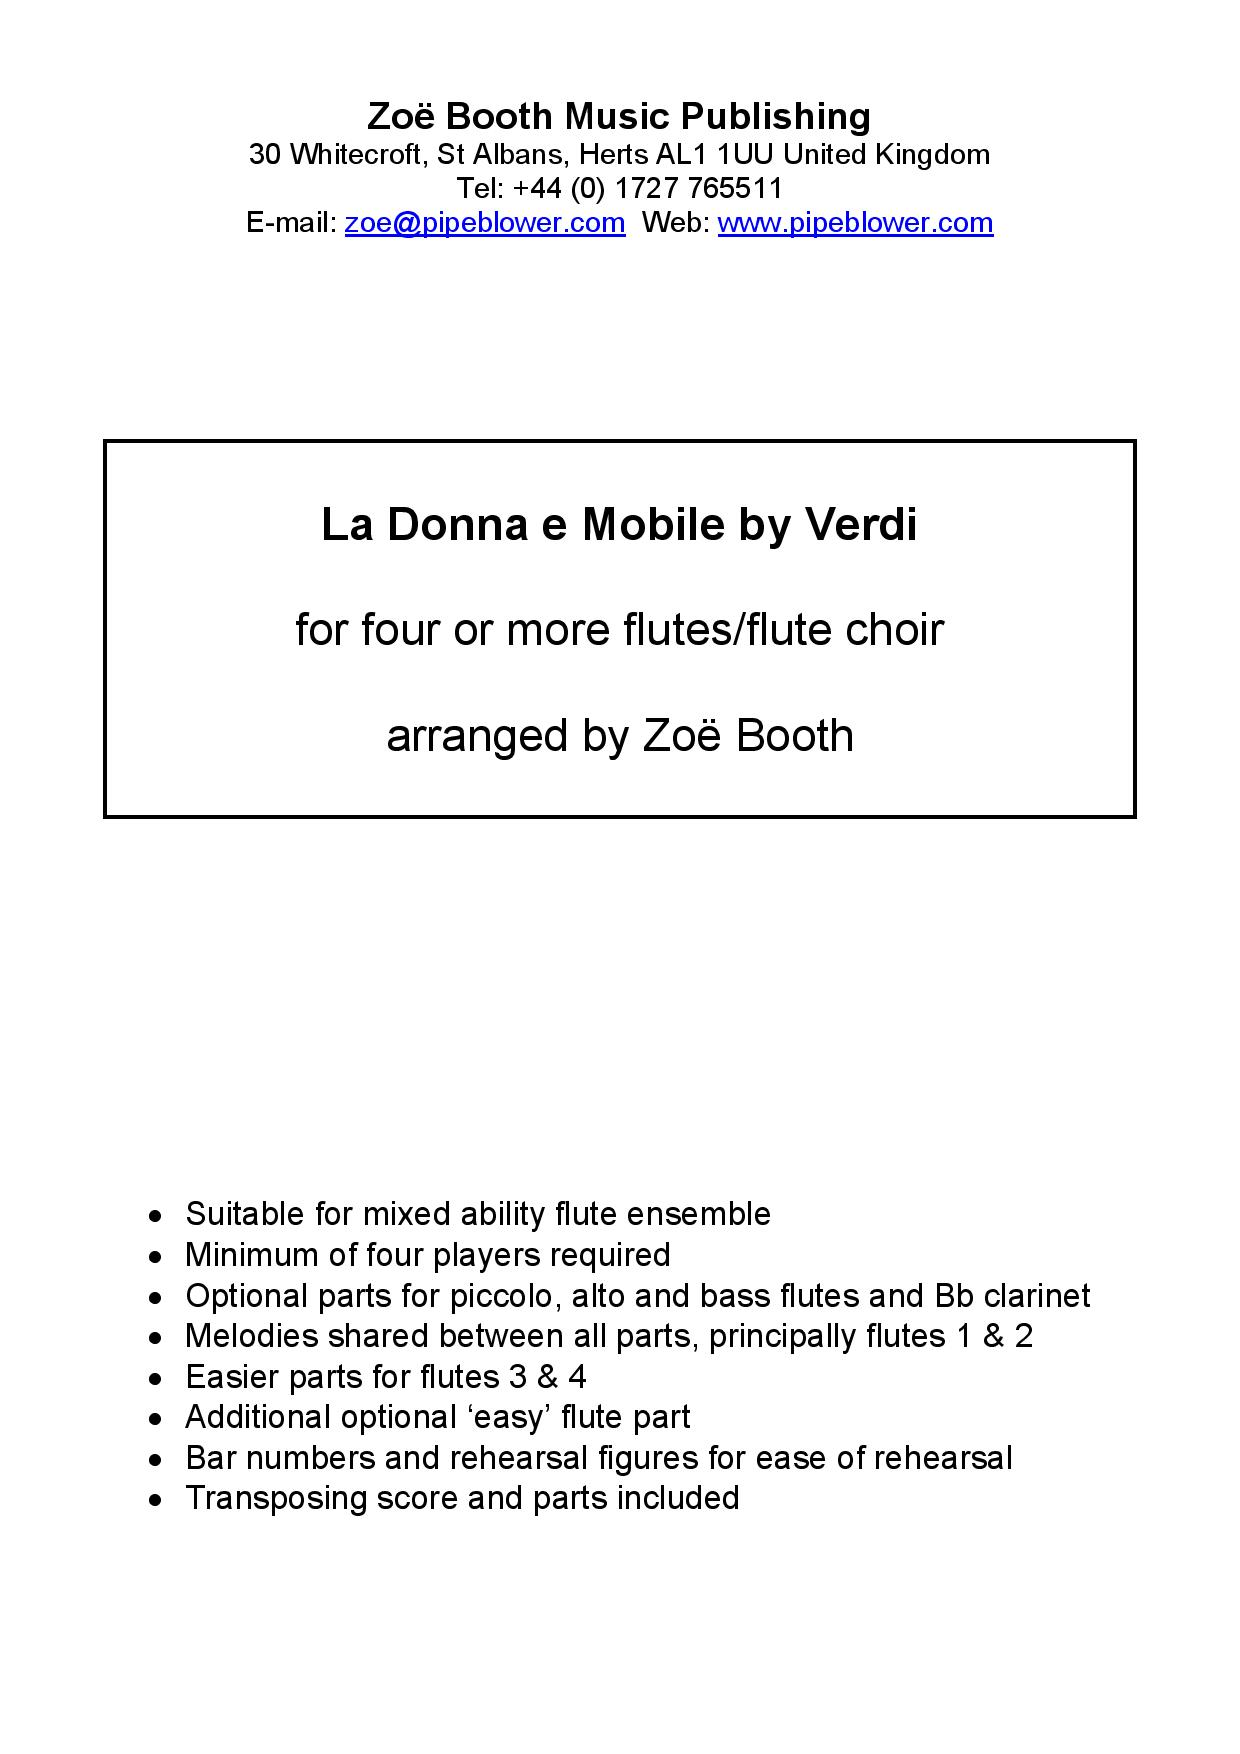 La Donna e Mobile from Rigoletto by Verdi,  arranged by Zoë Booth for four or more flutes/flute choi